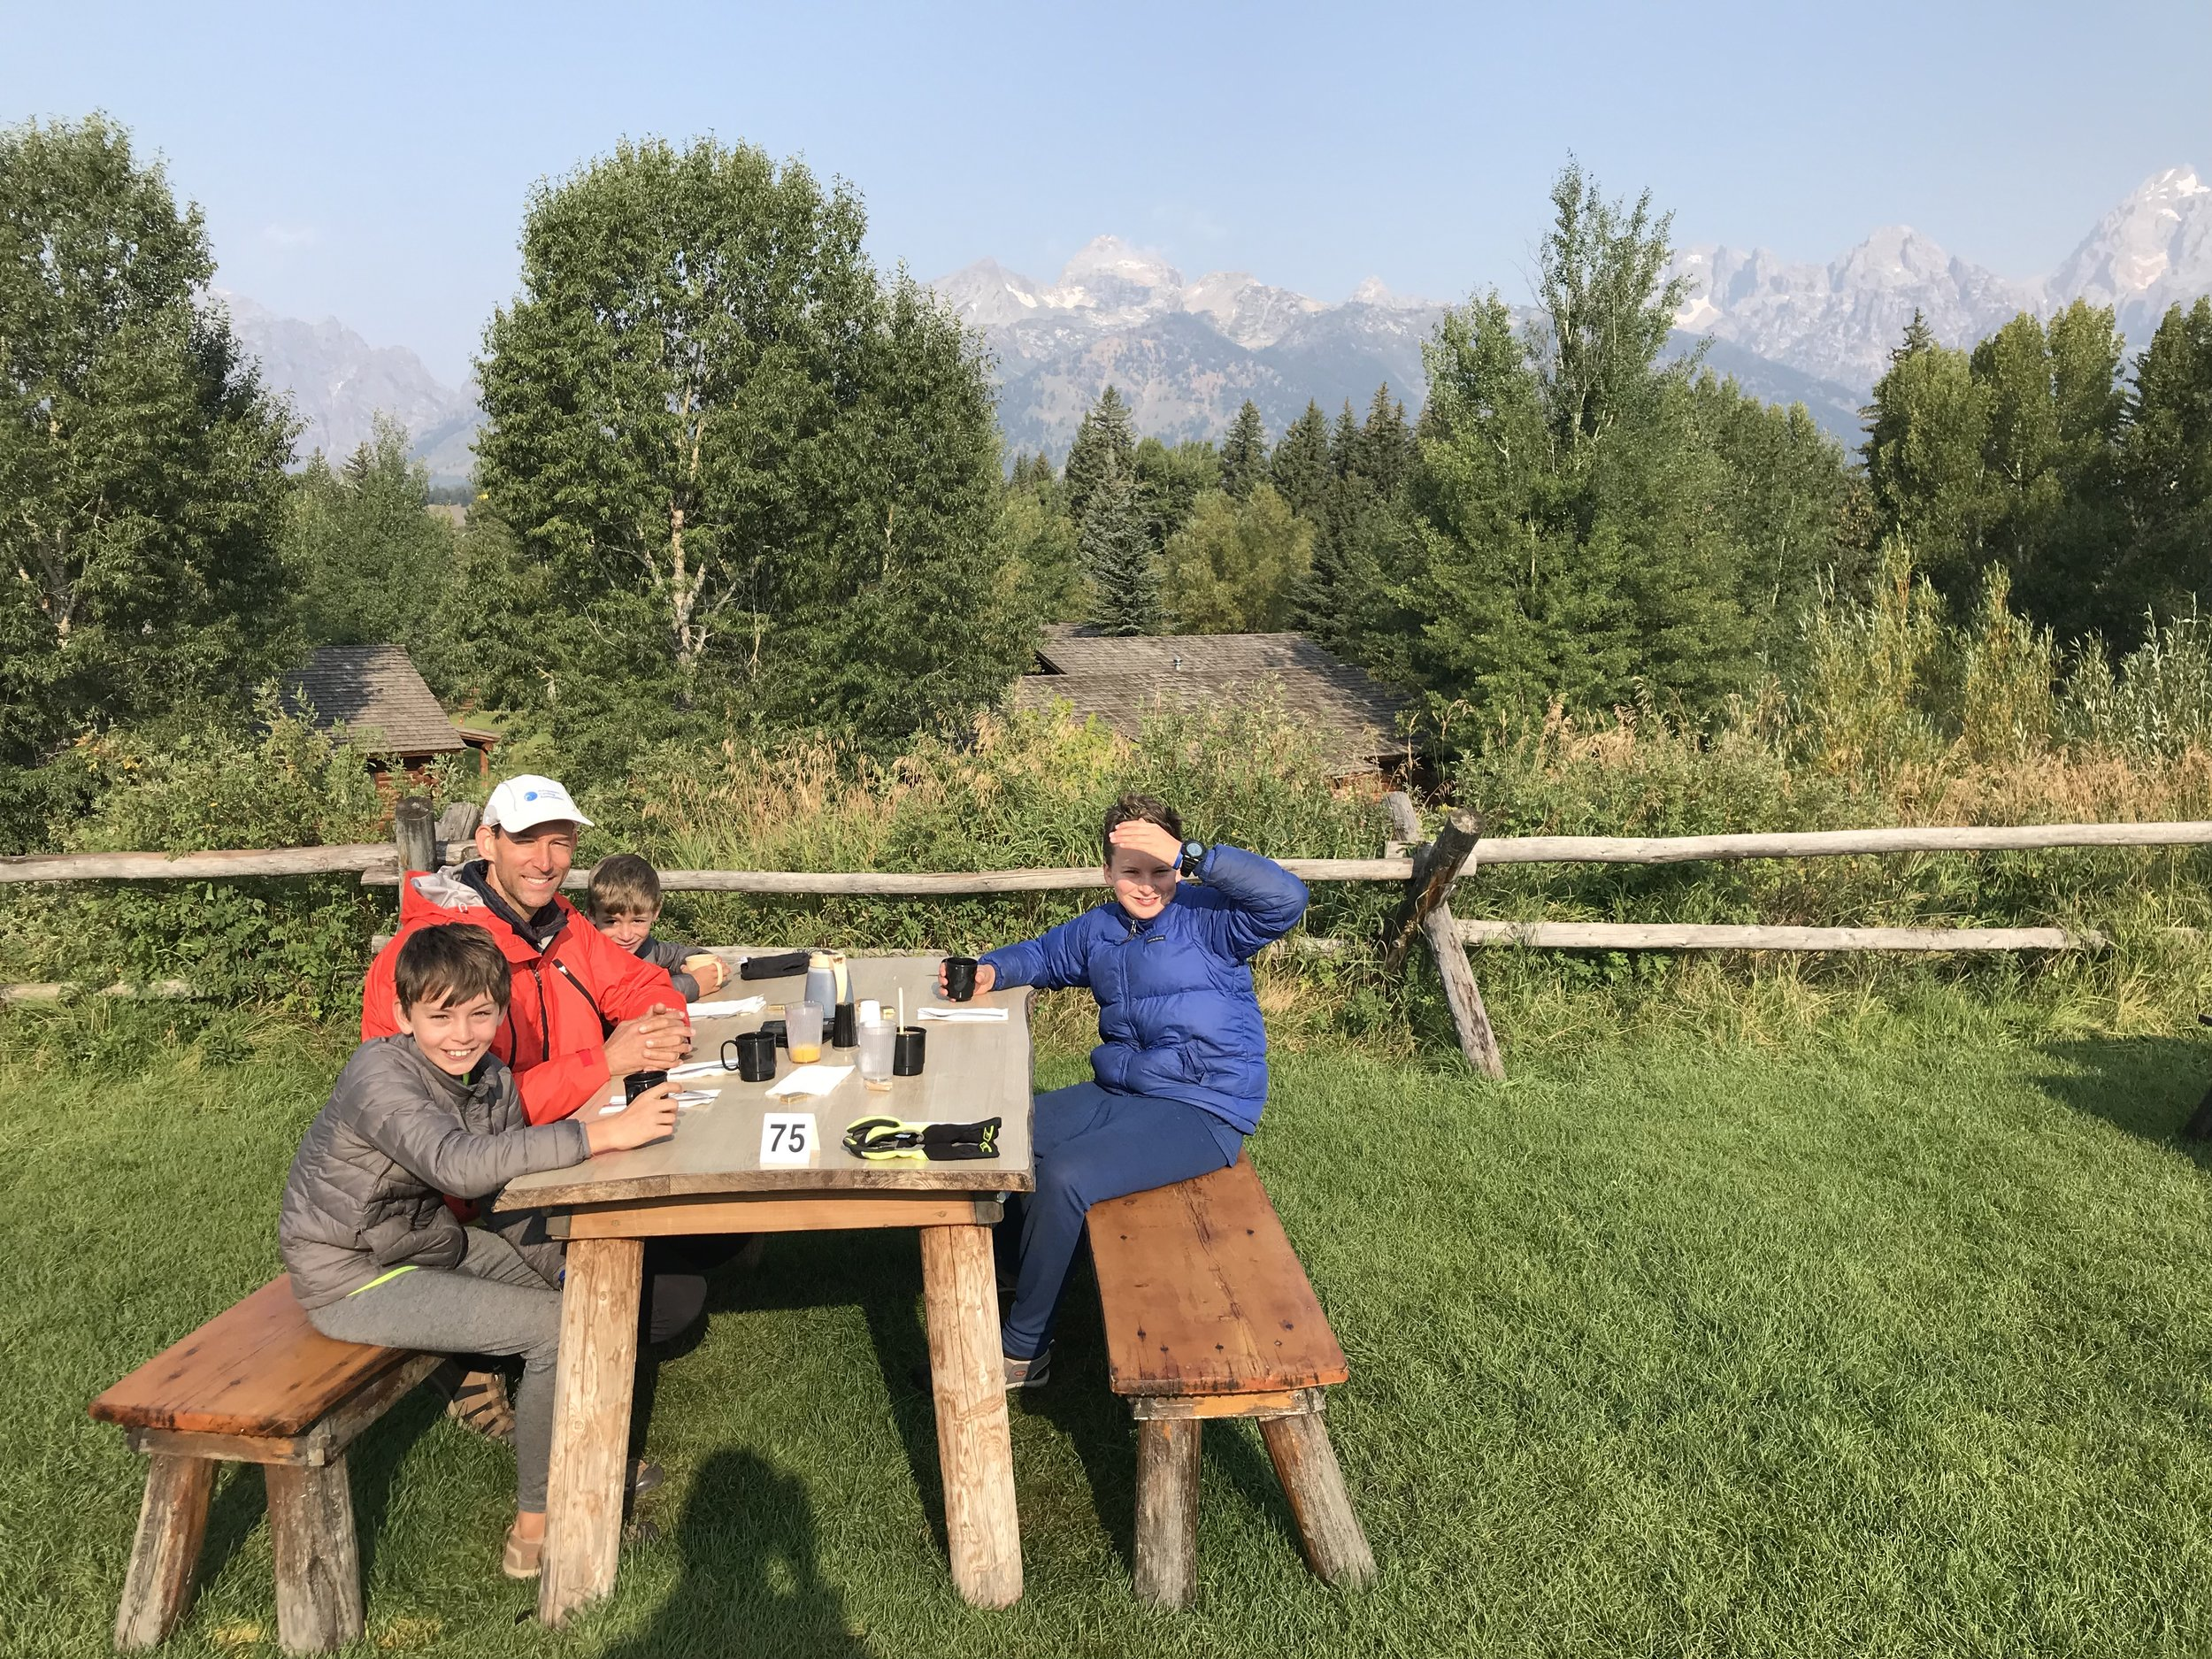 We got an early start on this final day- that we were able to stop for breakfast at this cool outdoor restaurant overlooking the Tetons.